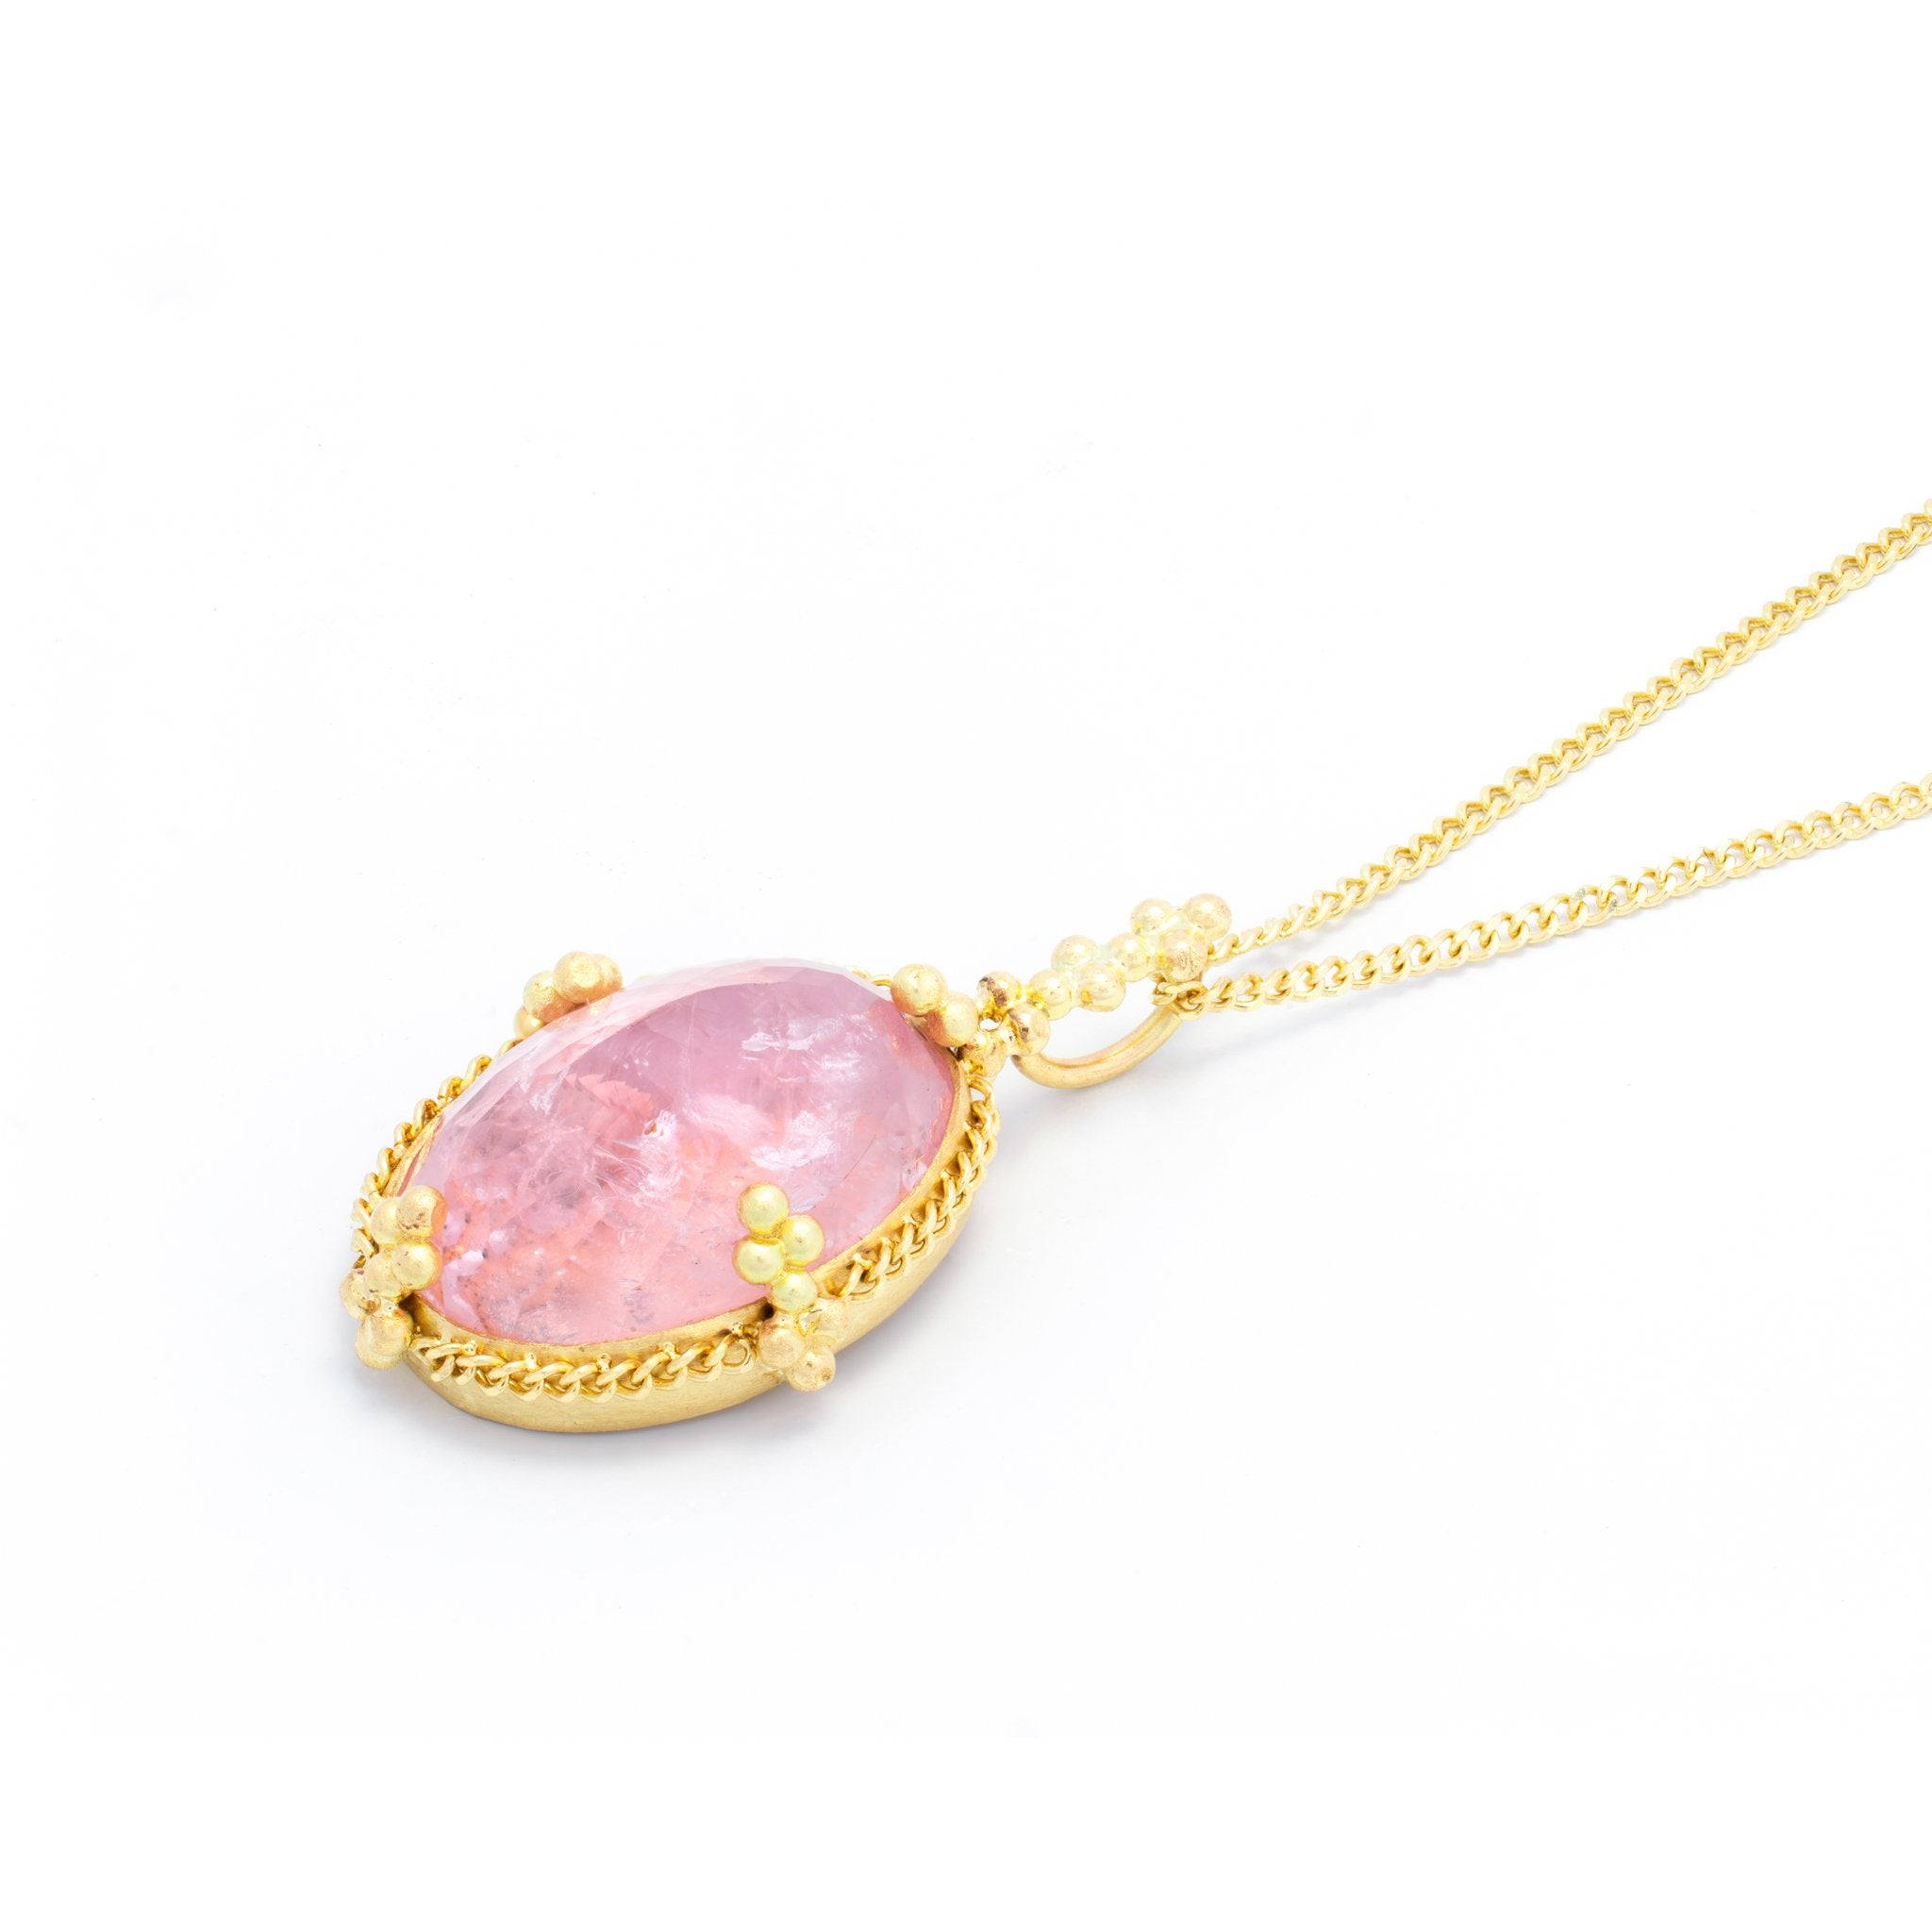 Amali Oval Morganite Pendant